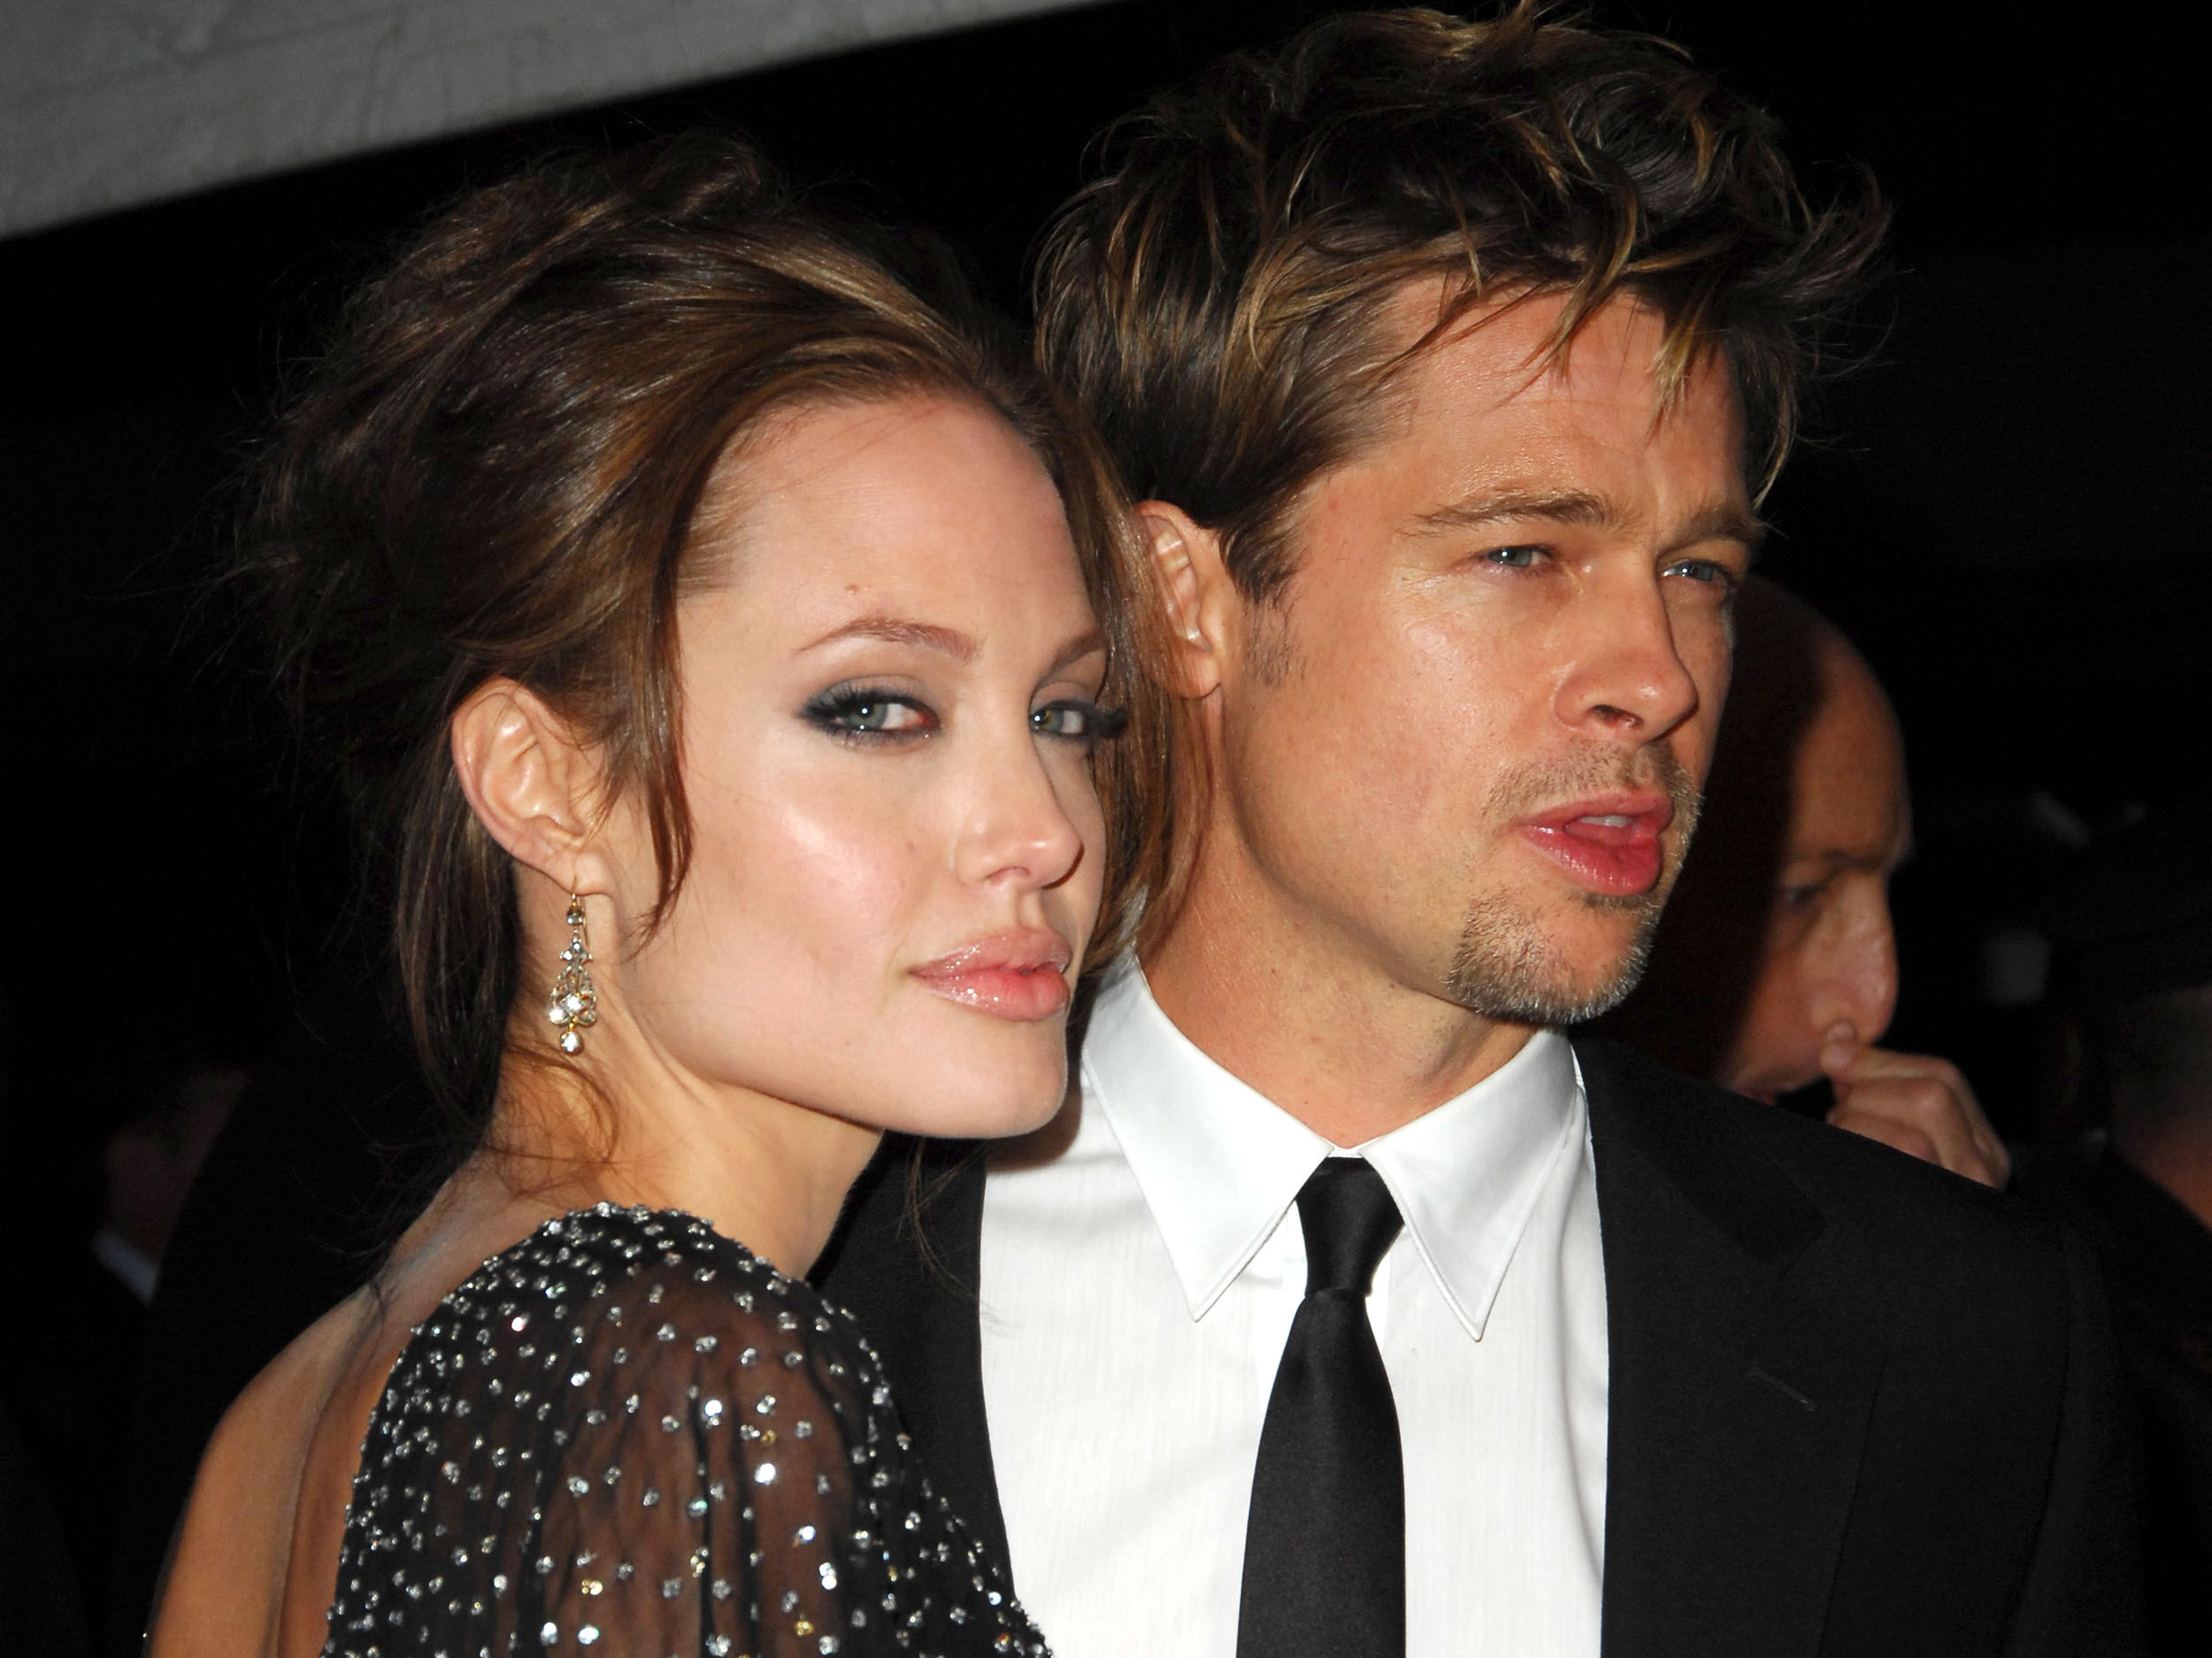 Brad and Angelina Step Out In Public